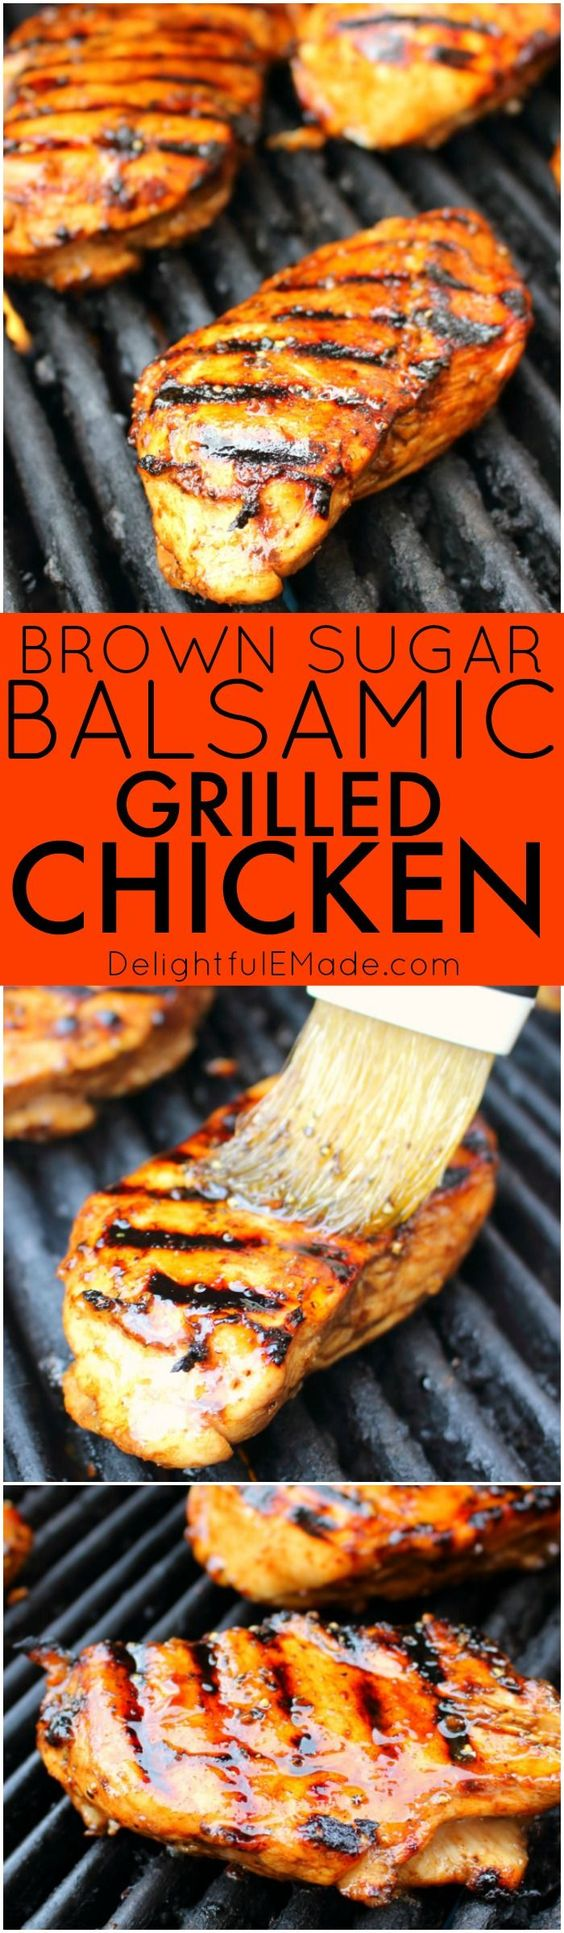 Brown Sugar Balsamic Grilled Chicken